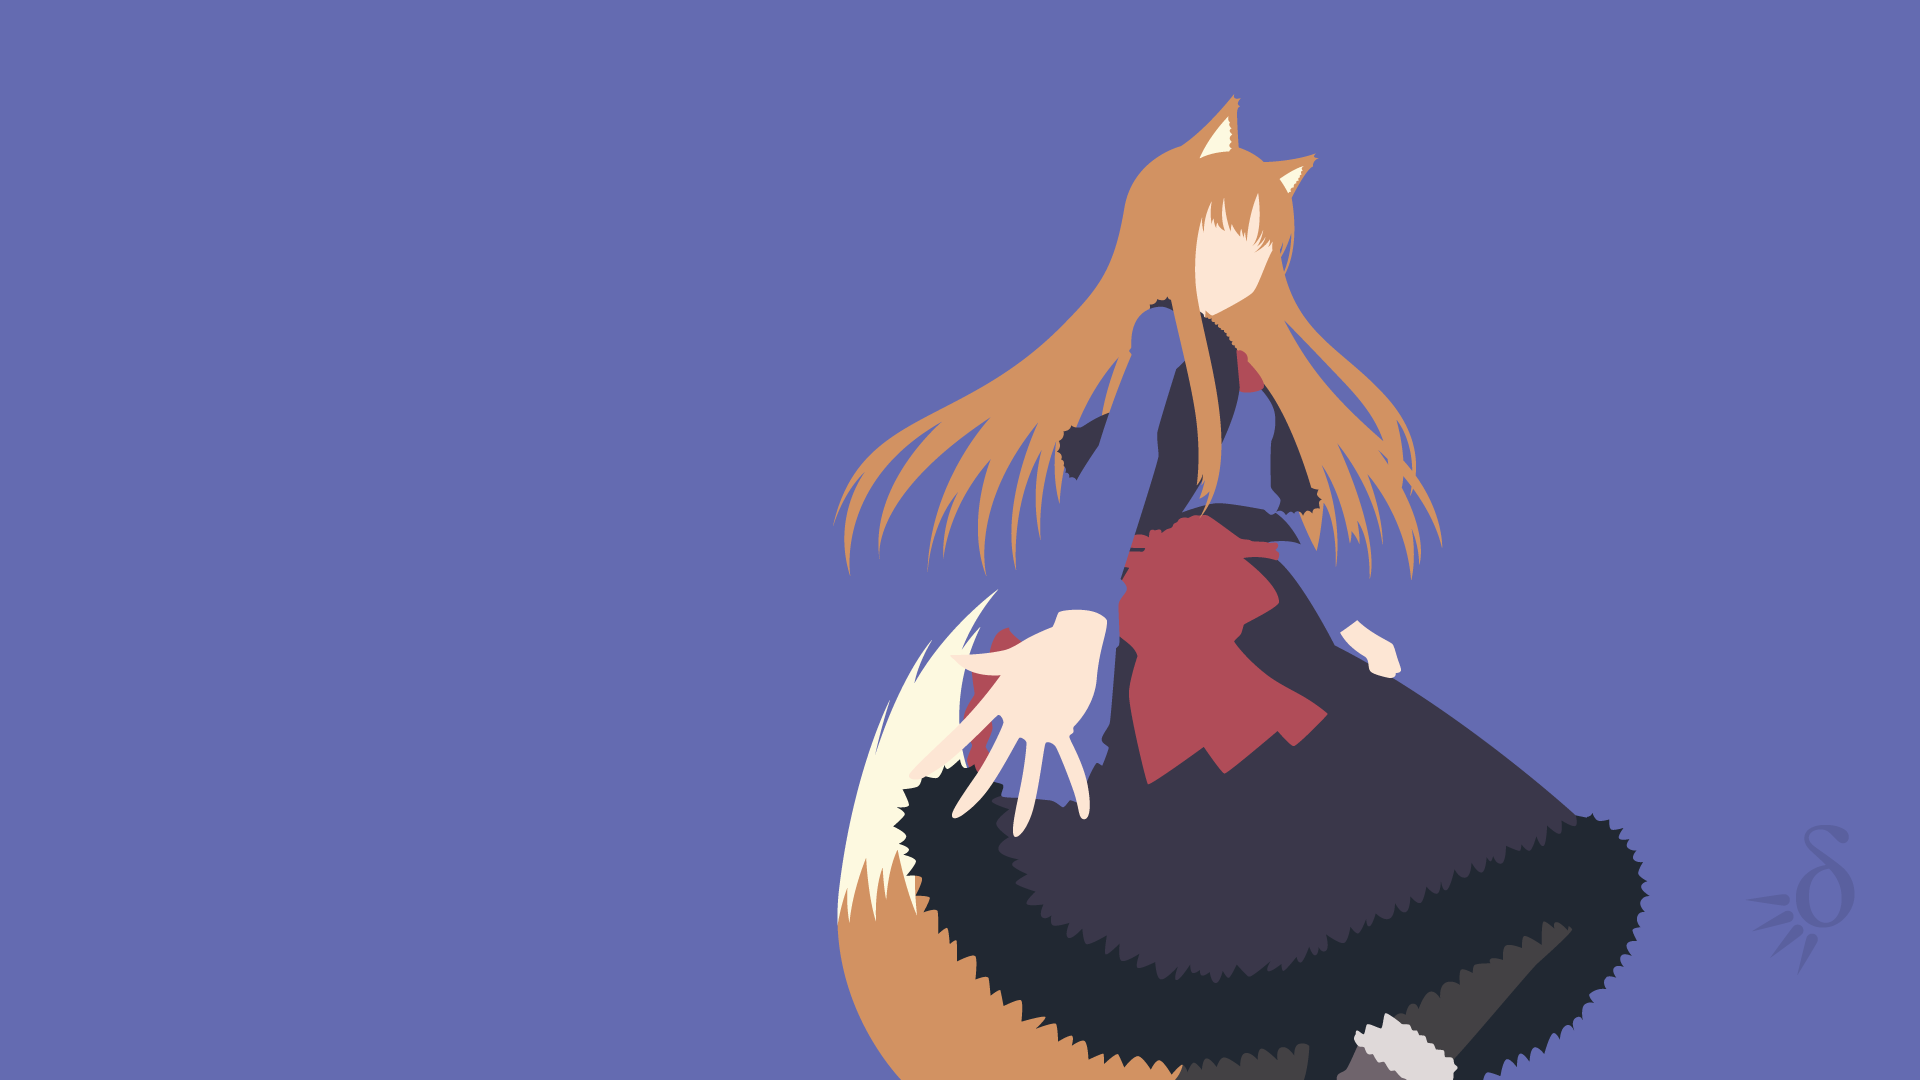 Spice And Wolf Spice Wolf Holo Spice Wolf Minimalist Wallpaper